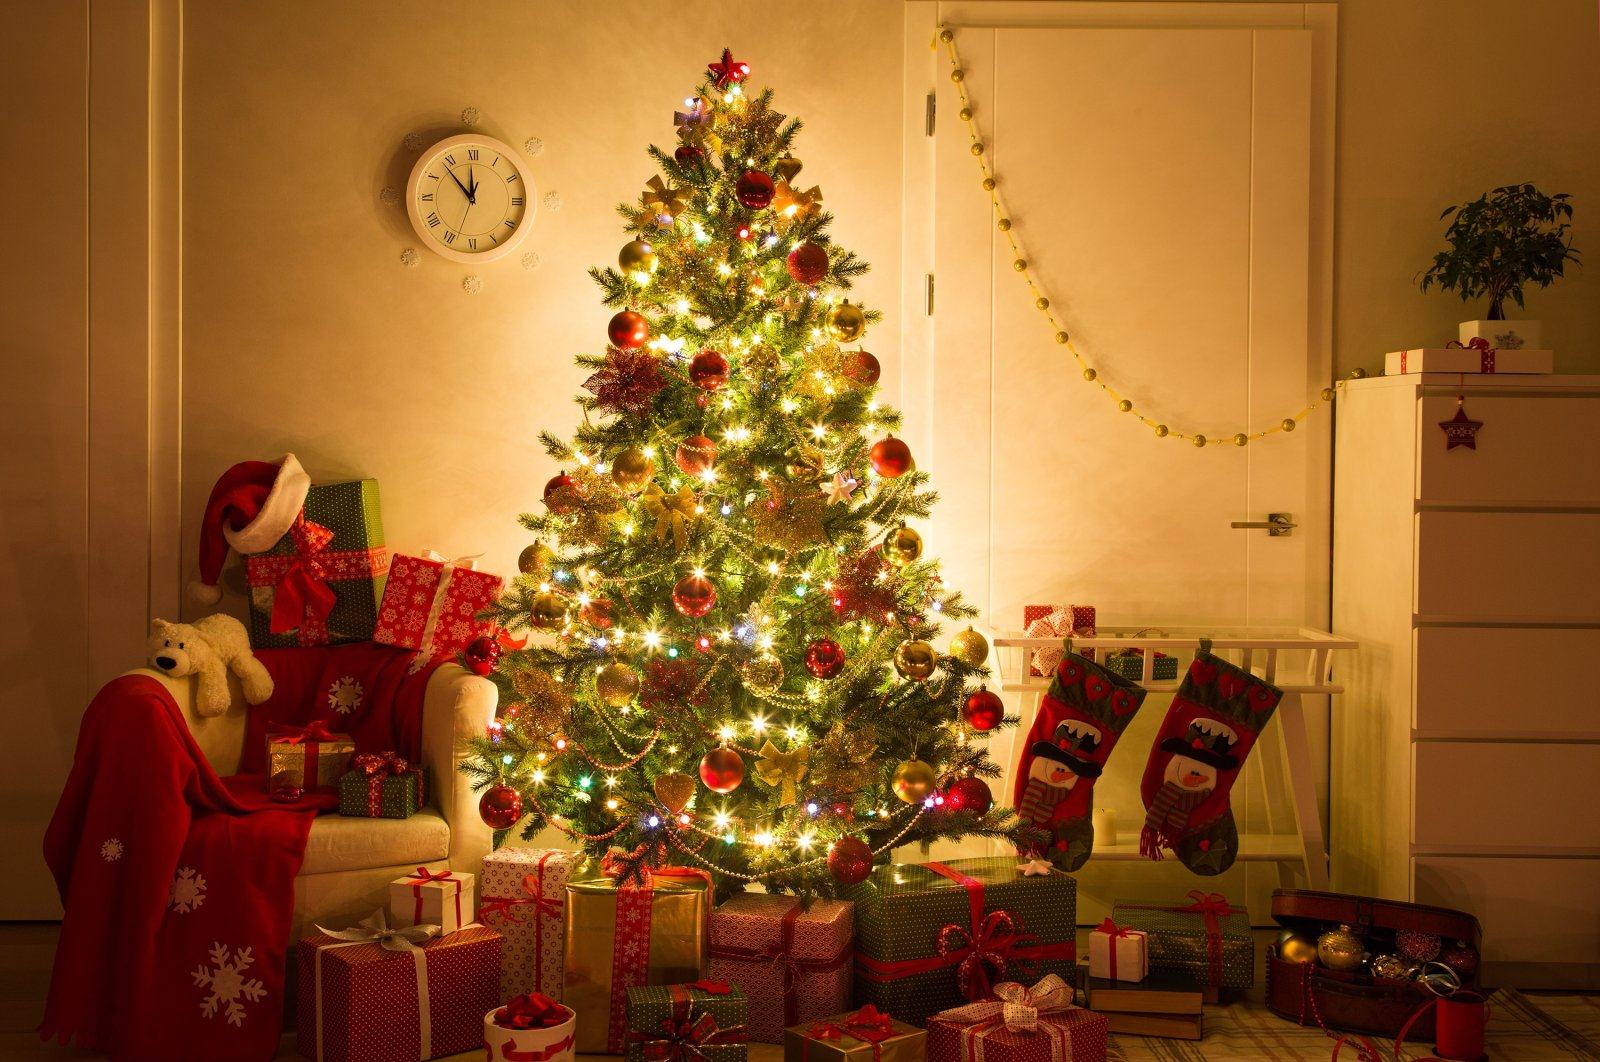 Although it is a mostly Muslim country, setting up trees to ring in the new year has become more common in Turkey in recent years. (Shutterstock Photo)